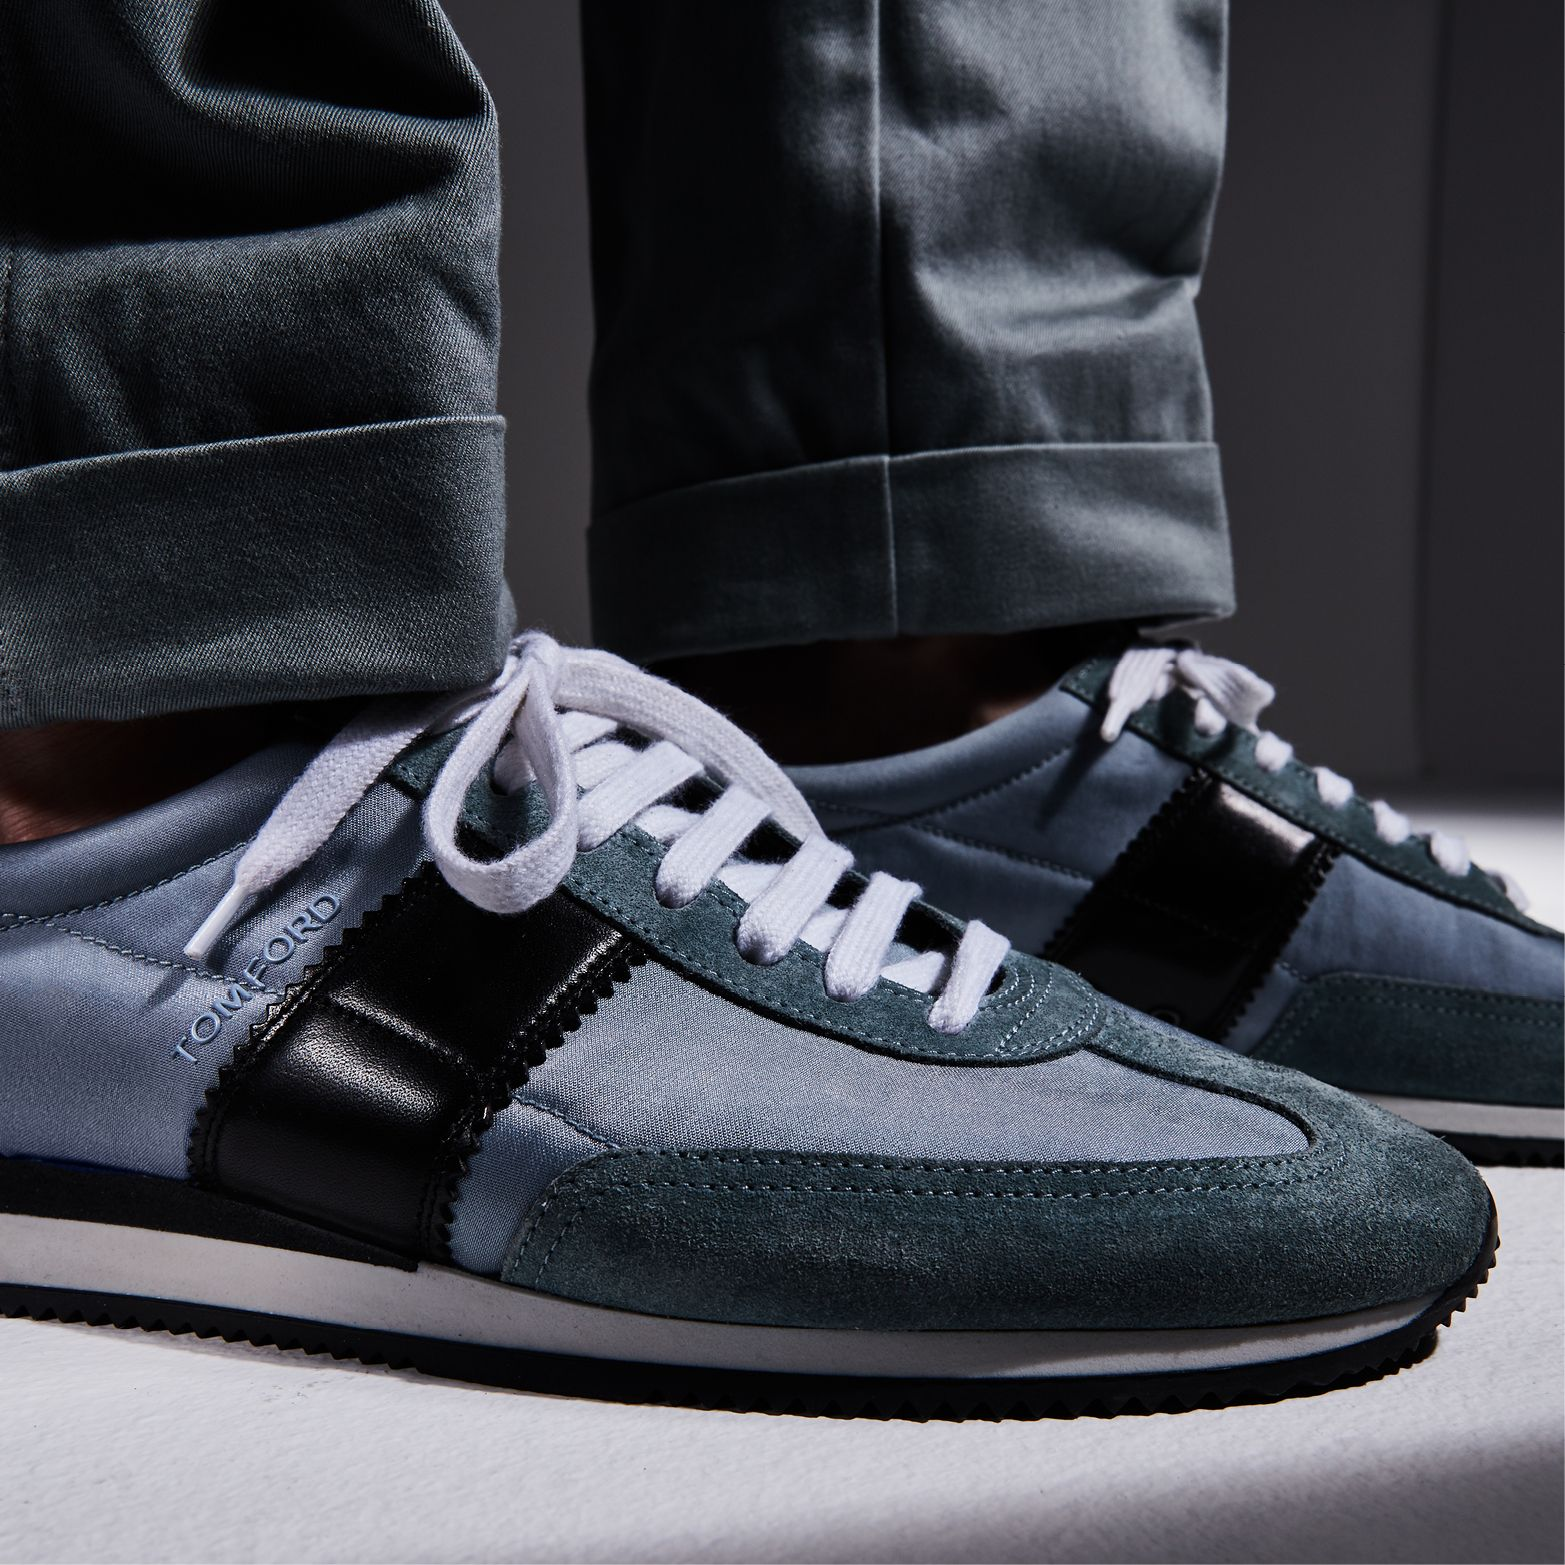 42a05e2f2ff The classic Orford Sneaker updated in lighter Spring tones.  TOMFORD ...